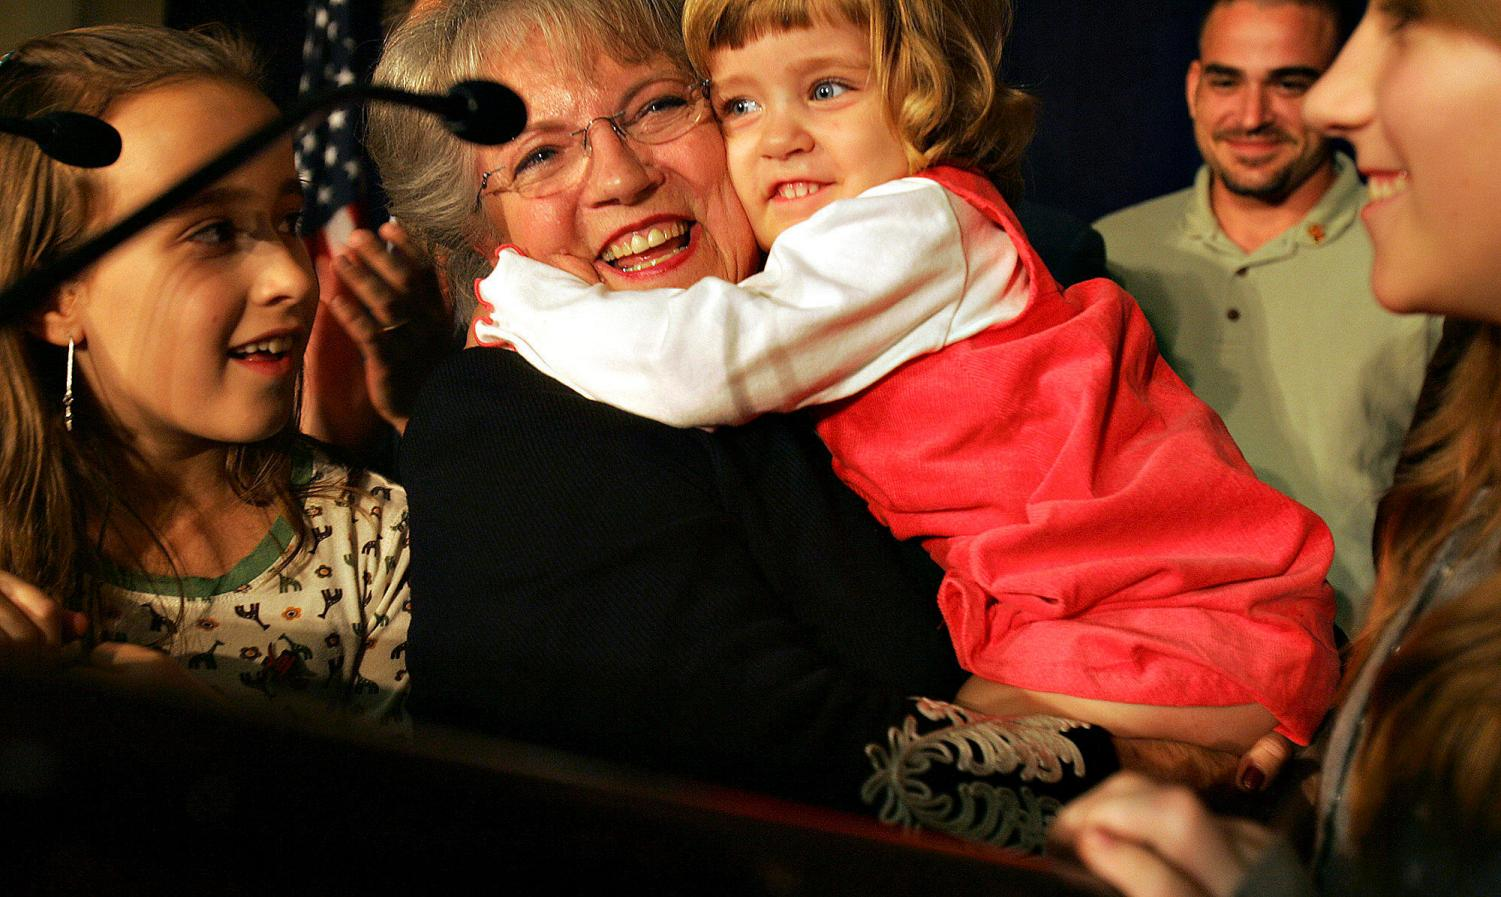 Carole Keeton holds her granddaughter, Anna McClellan (who happens to have the byline for this article), and is surrounded by her other granddaughters, Kathryn and Michelle McClellan, as she gives her concession speech for the gubernatorial race on Nov. 7, 2006. Although, she lost the race, having her family there made it one of the highlights of her political career.